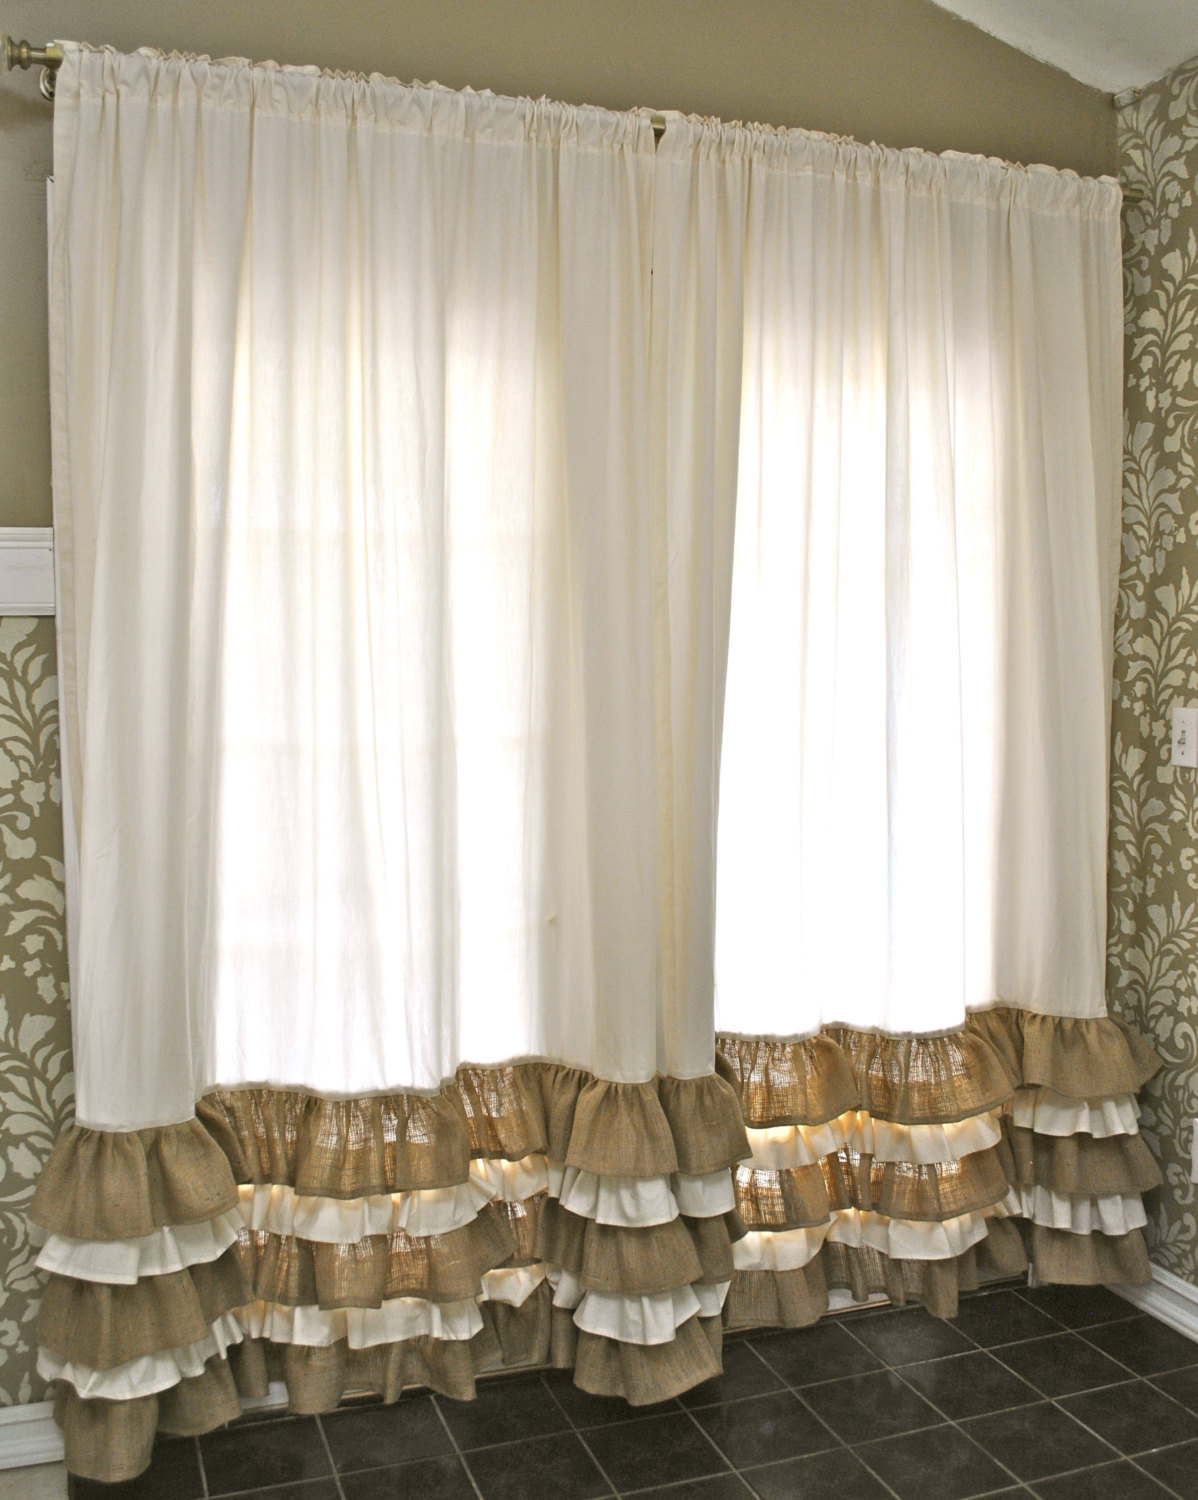 Burlap Window Treatments Practical And Stylish Variant Four